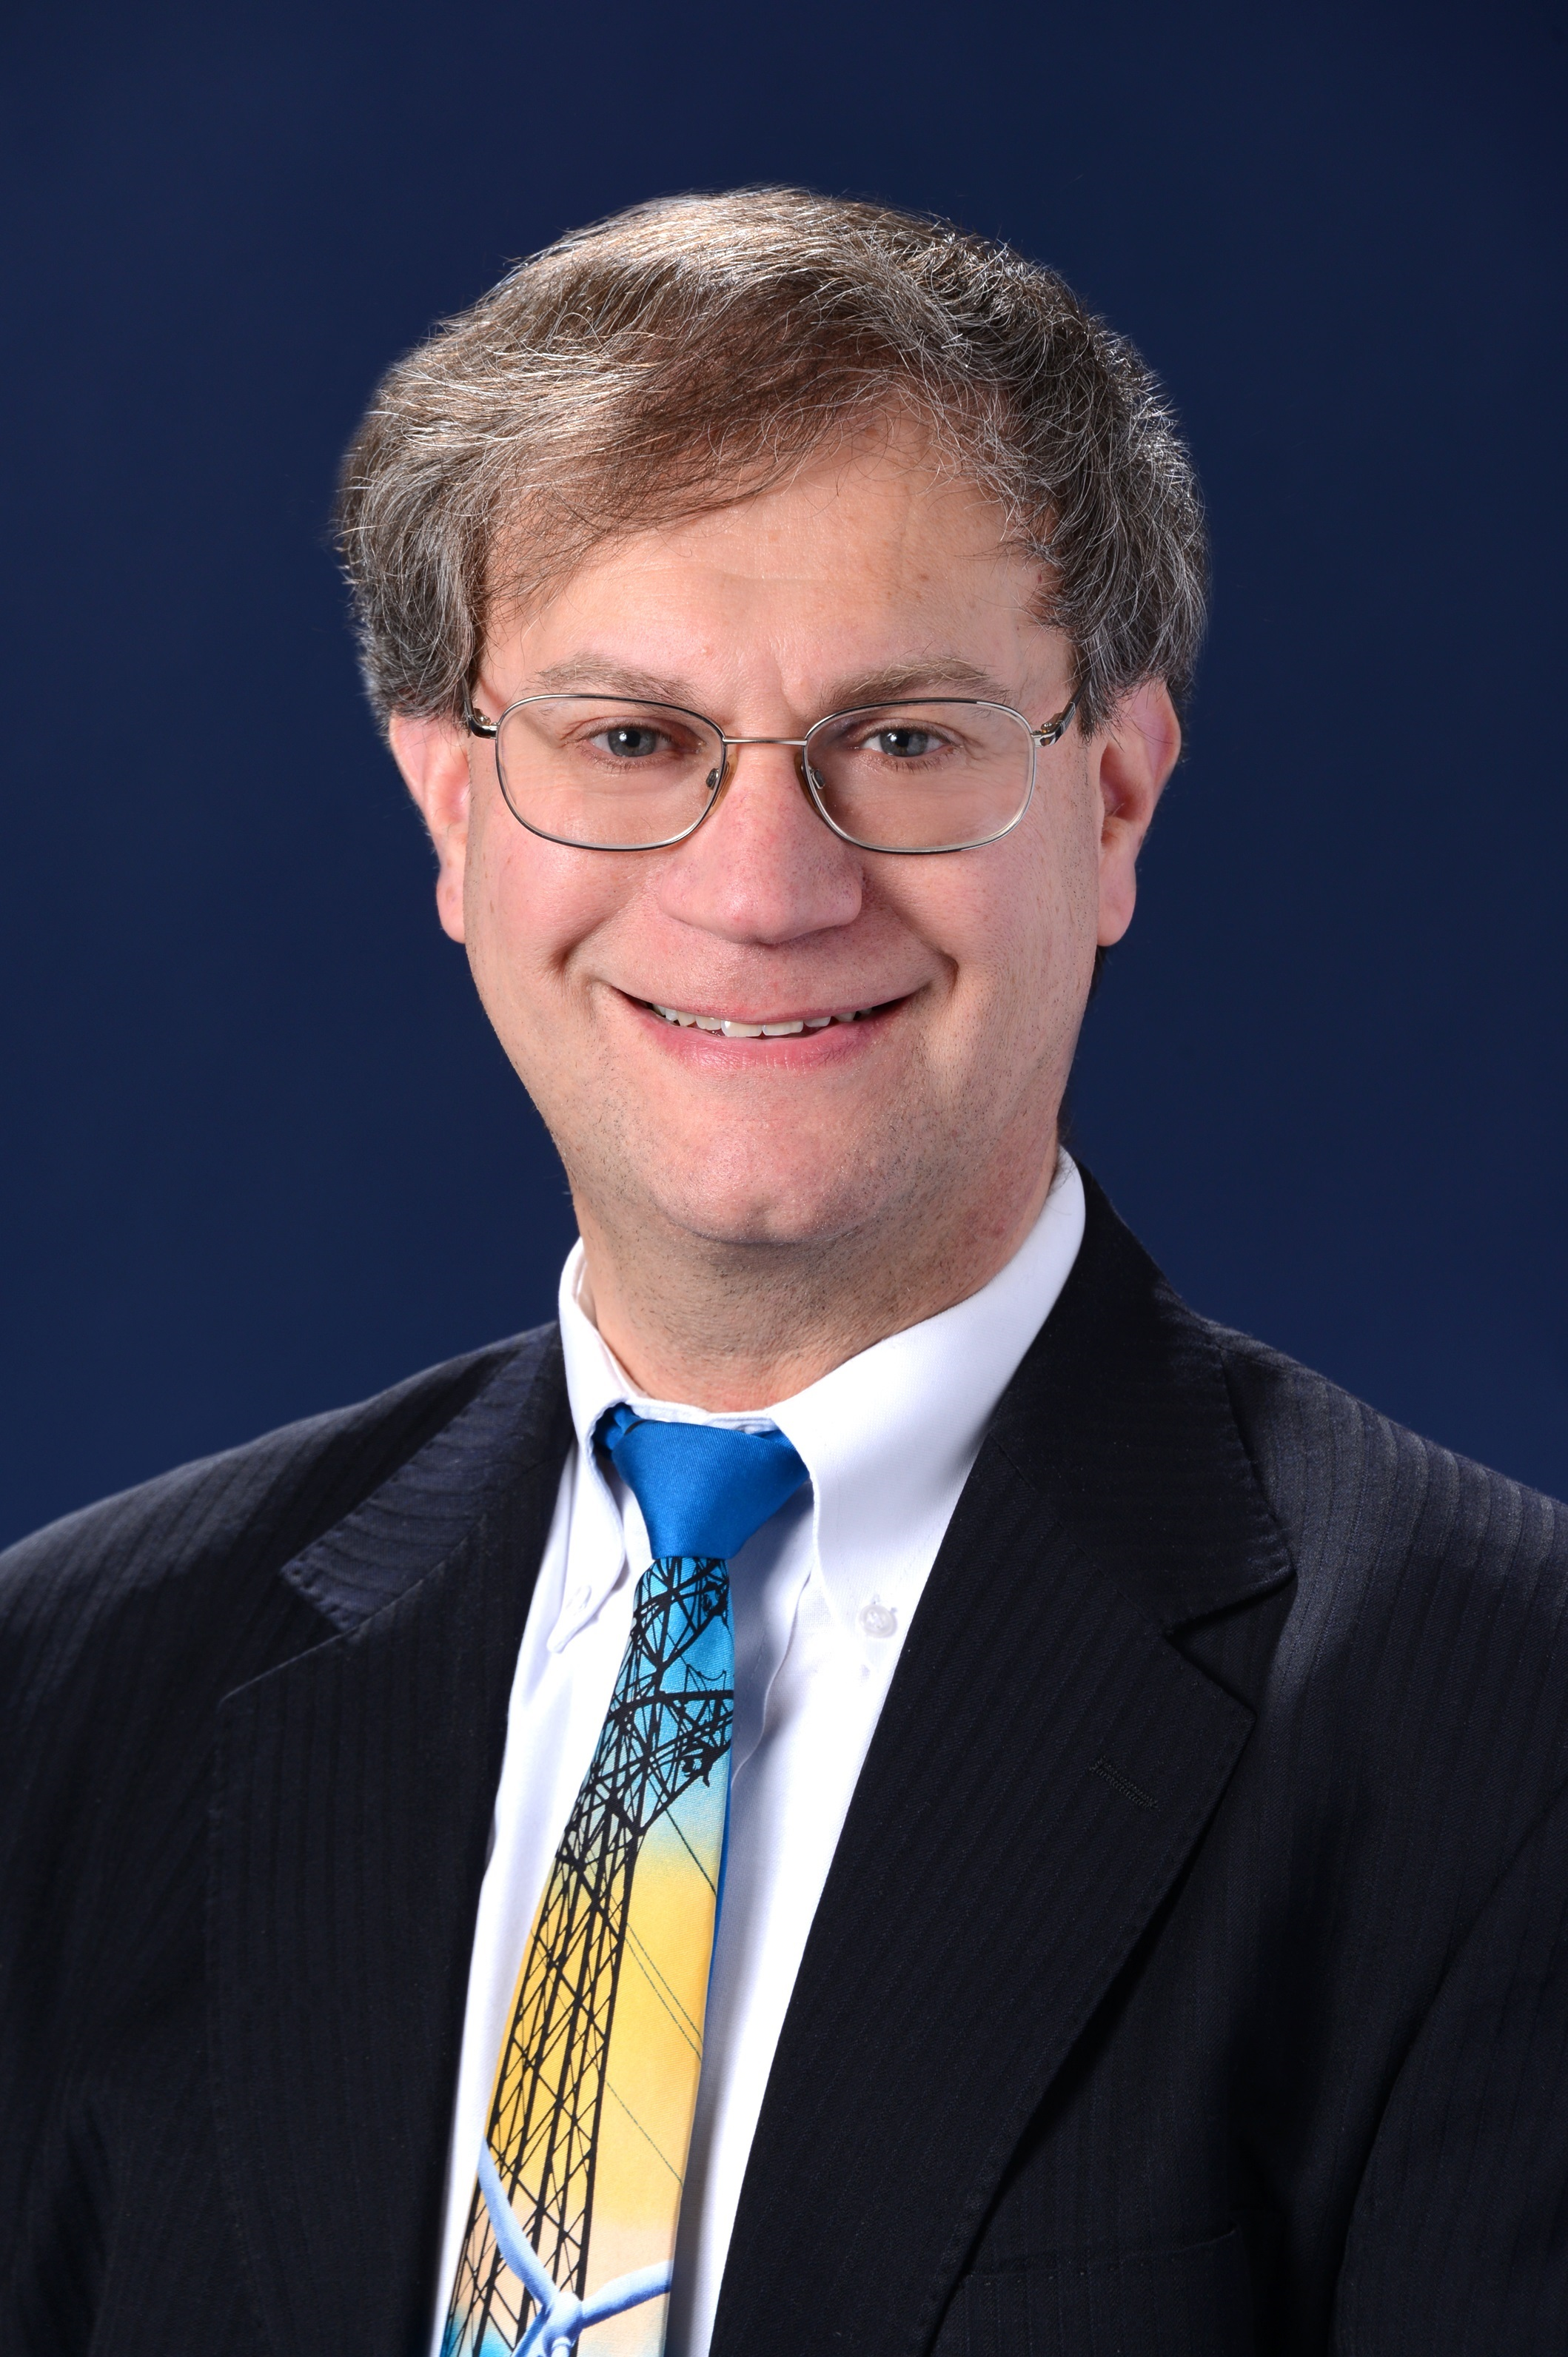 Mr. Jeffrey S. Katz